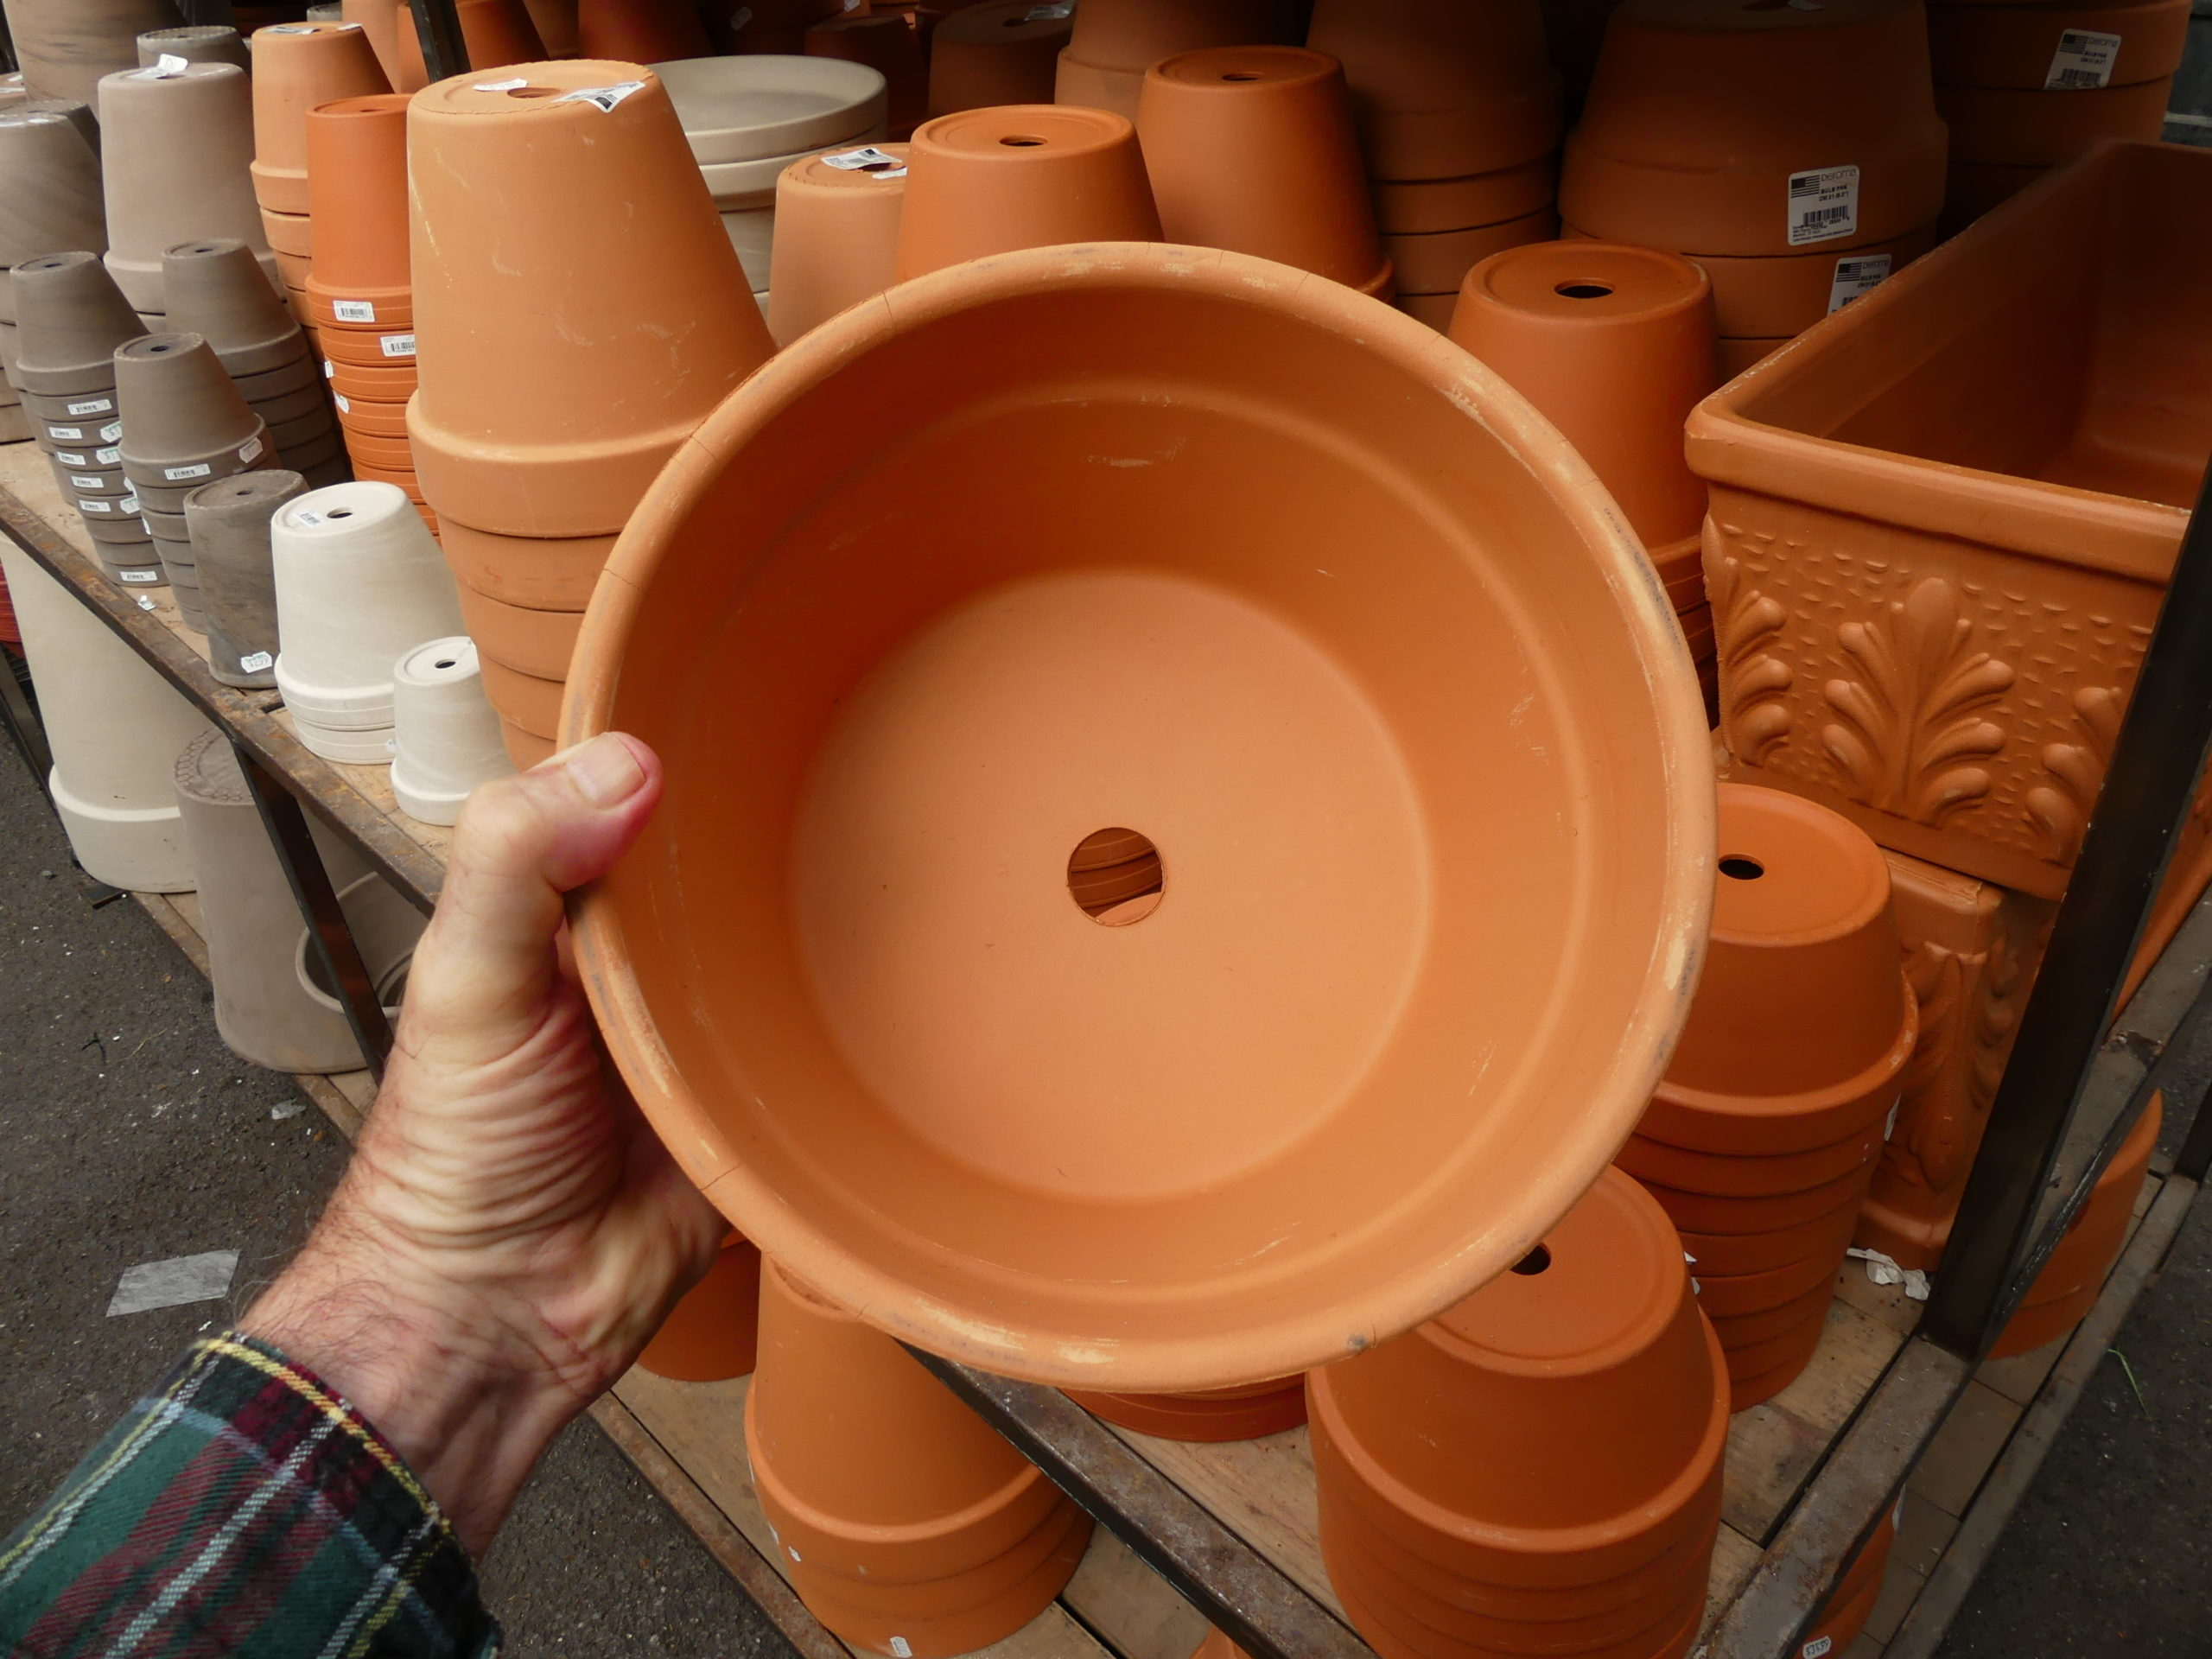 This 10-inch bulb pan (at a local garden center) might accommodate a single layer of tulips with some minor bulbs set below, but 11 tulips pretty much maxes out the space in this size pot. Bulb pans are available from 6 inches in diameter up to12 inches in diameter, and some garden centers have double-depth pots for layered plantings.